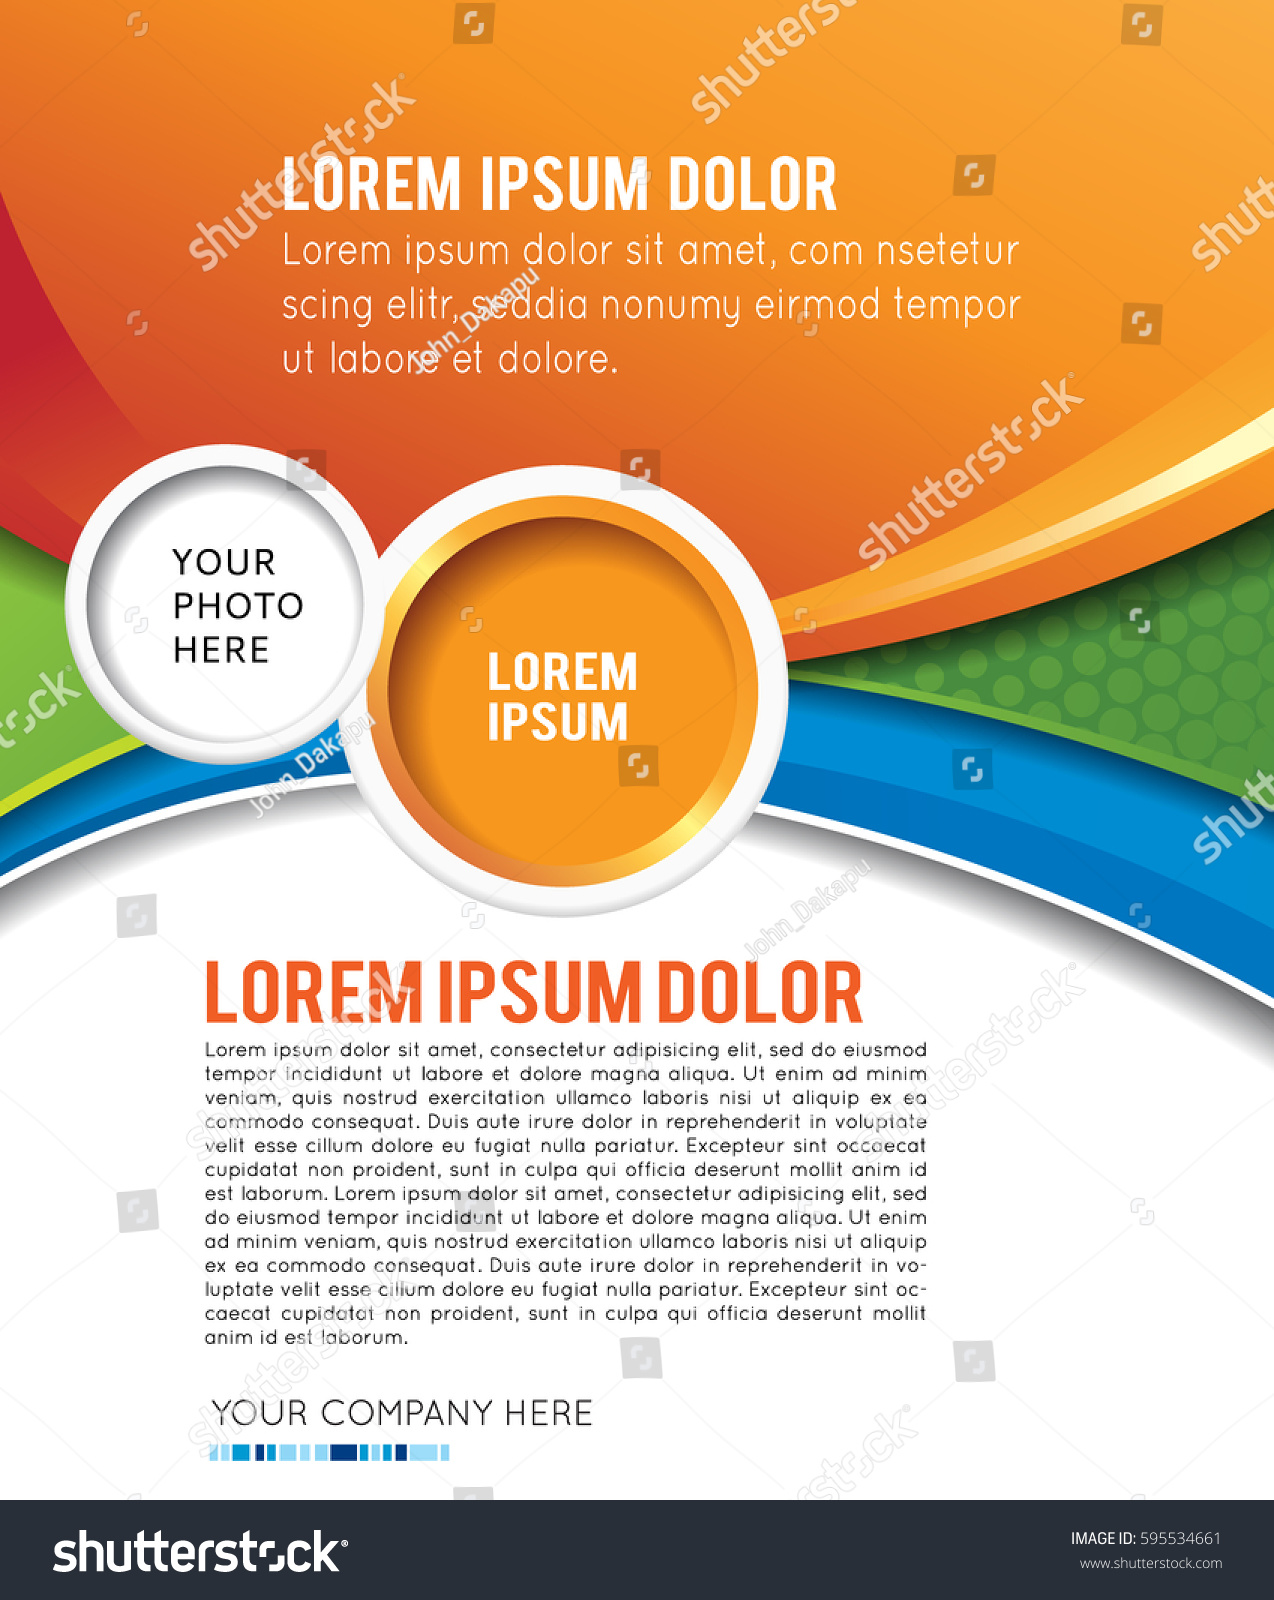 Poster design layout templates - Stylish Presentation Of Business Poster Magazine Cover Design Layout Template